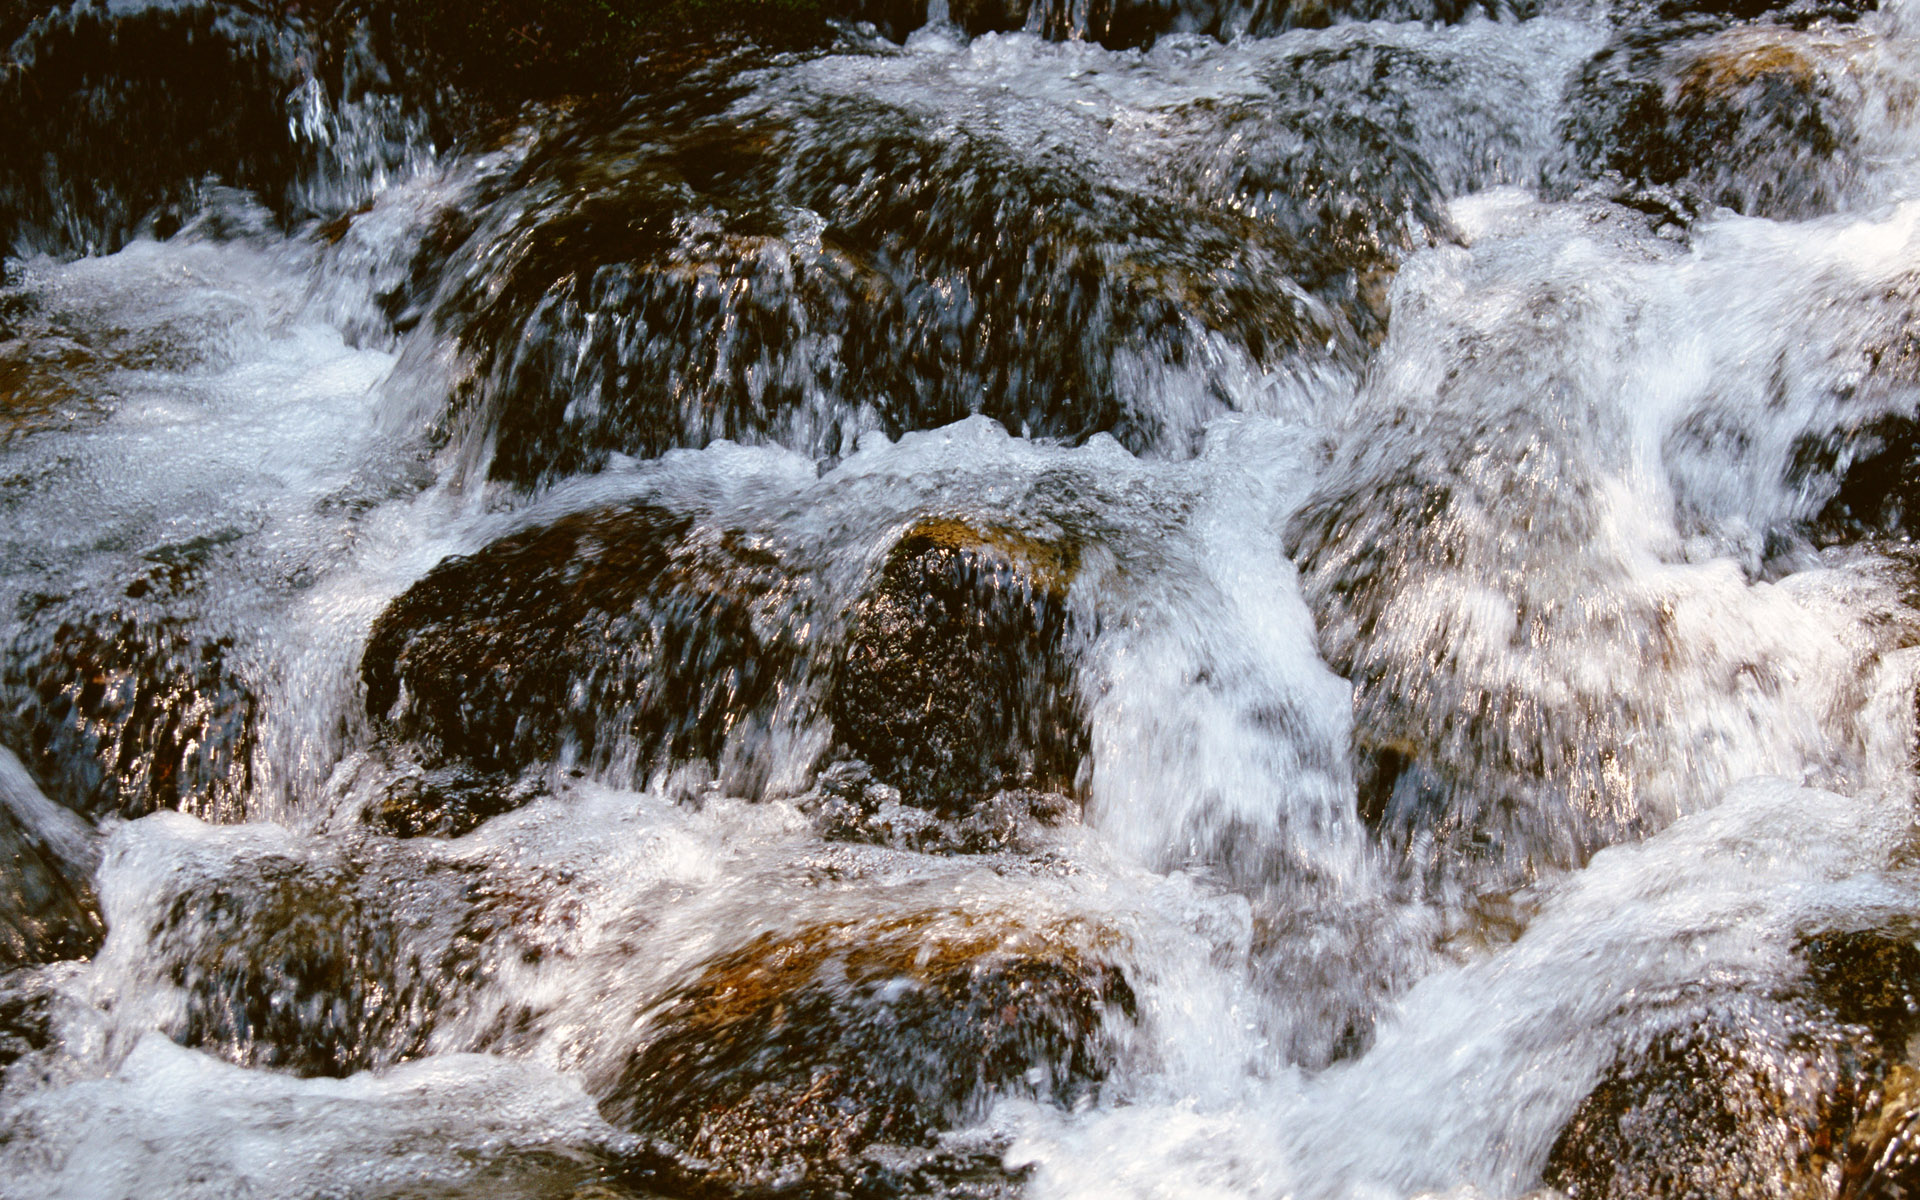 Waterfalls, streams, 5043